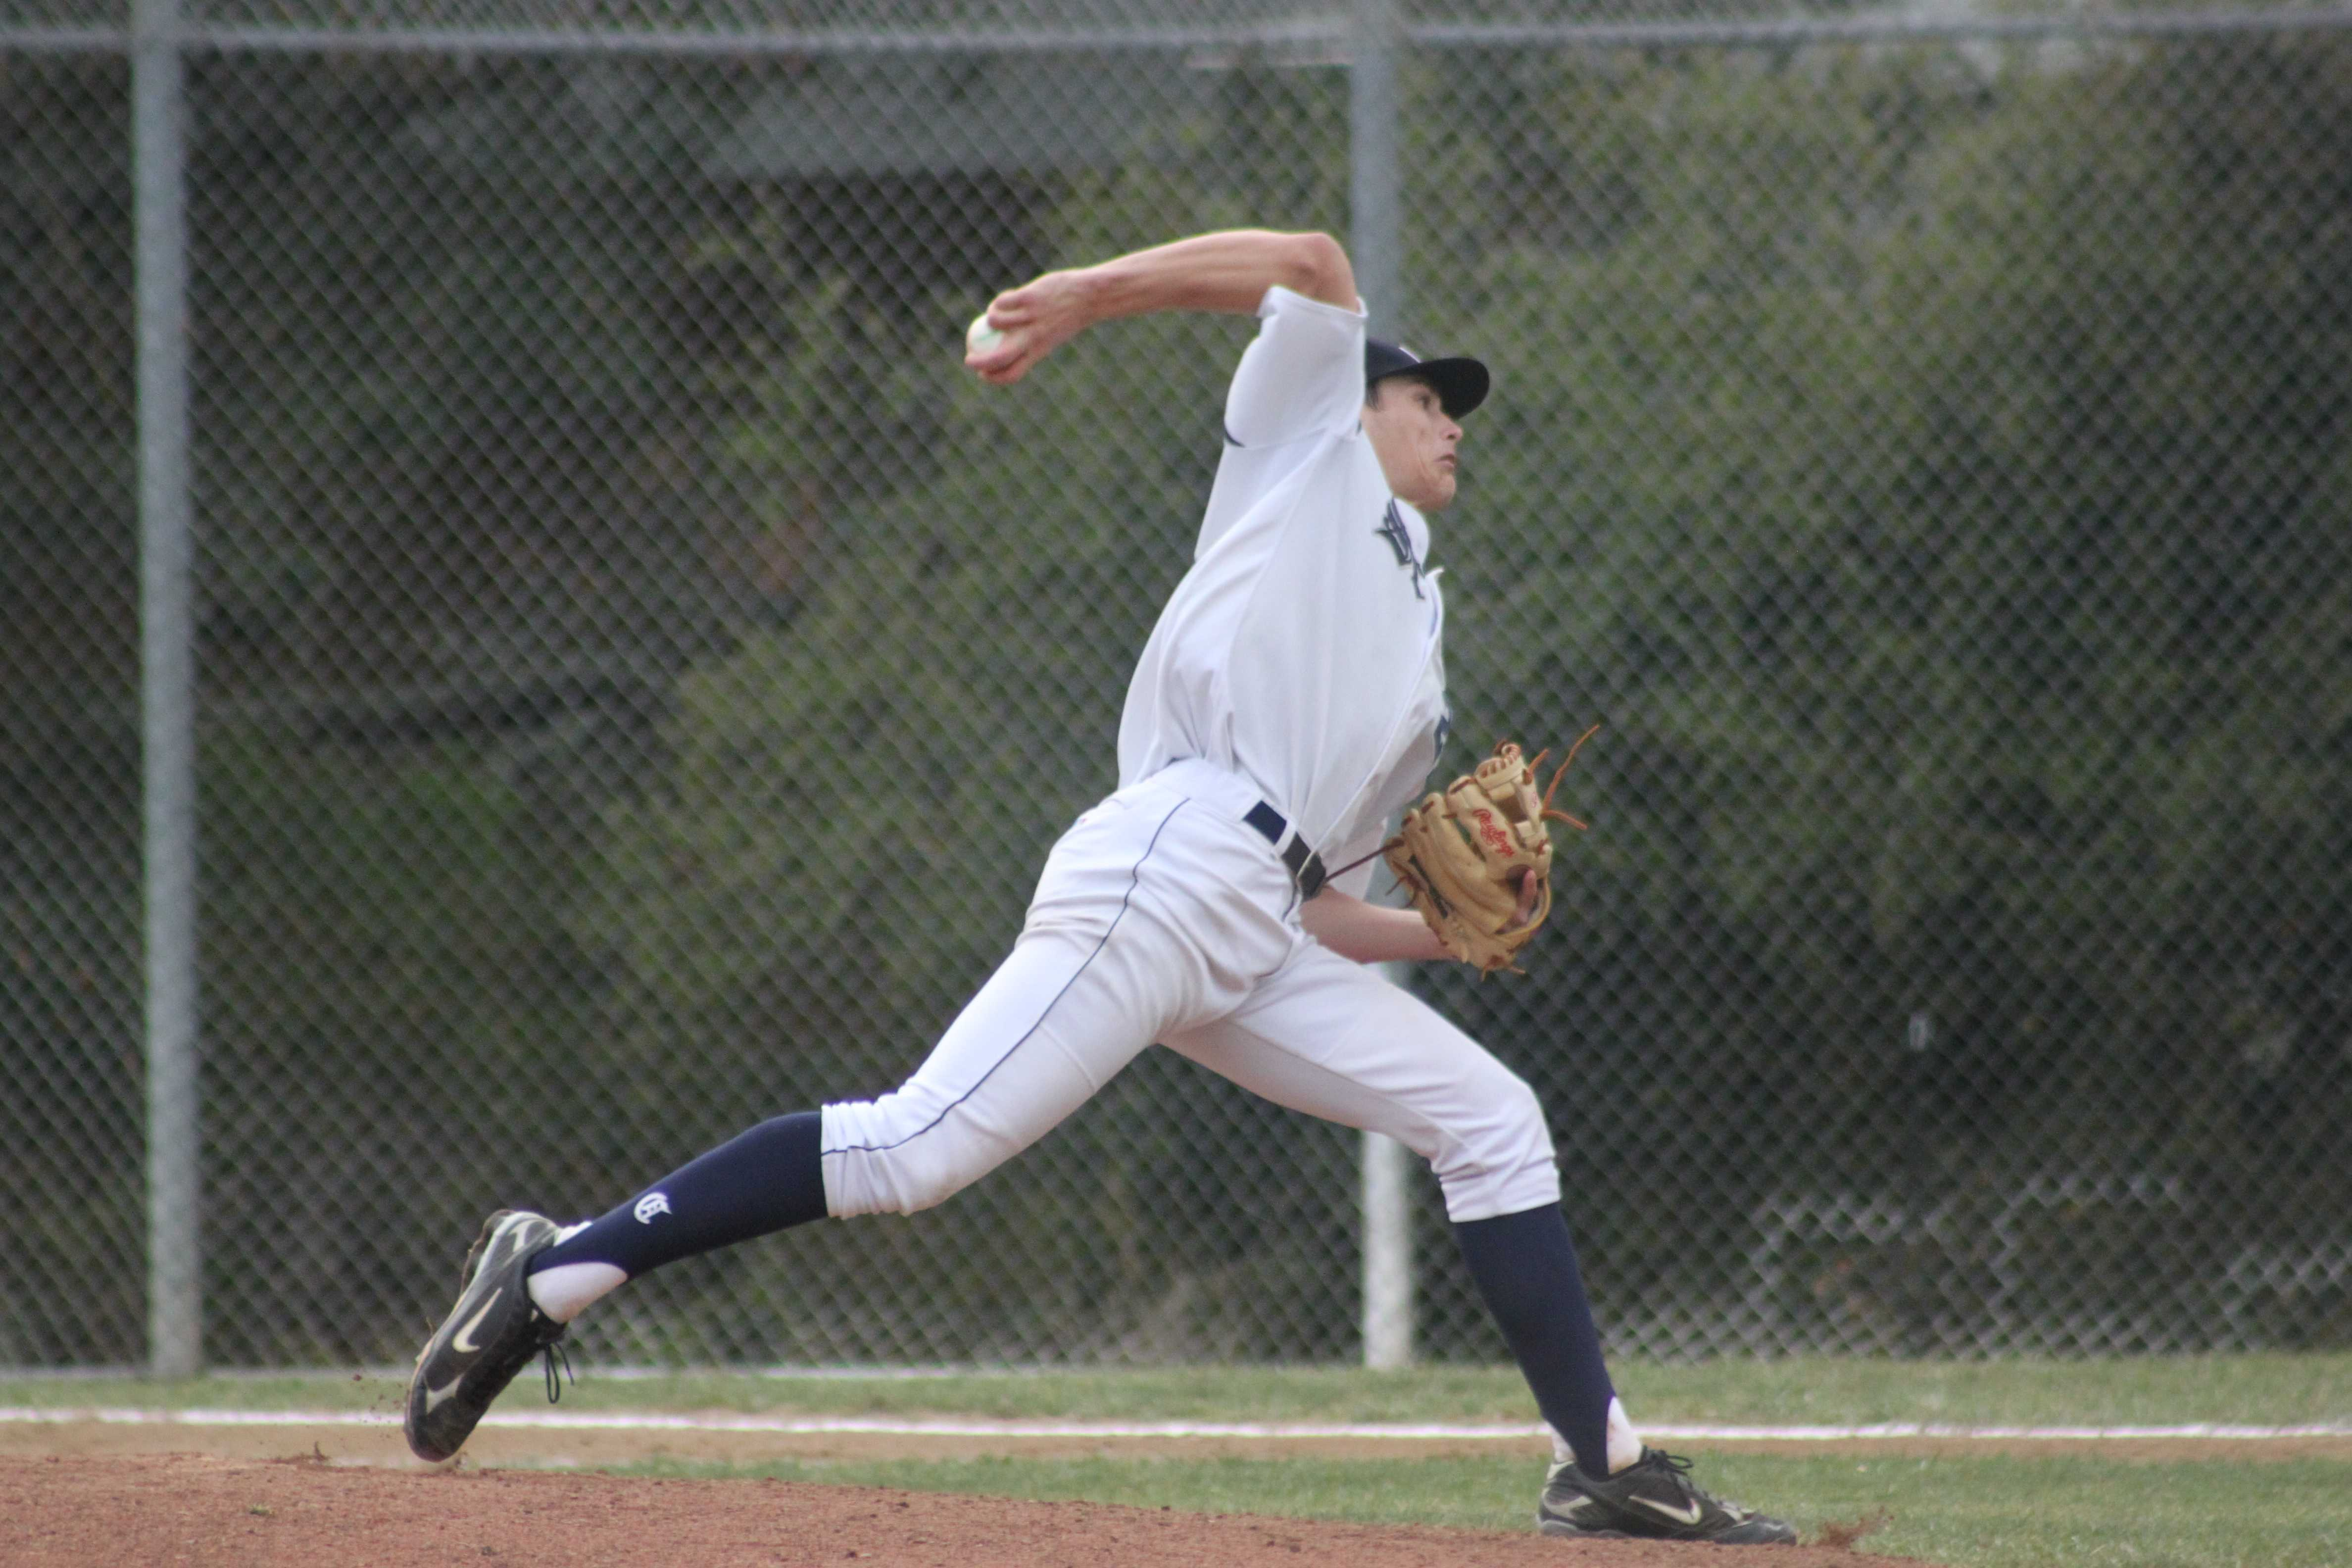 Senior Greg Hubbell pitching against the Cougars